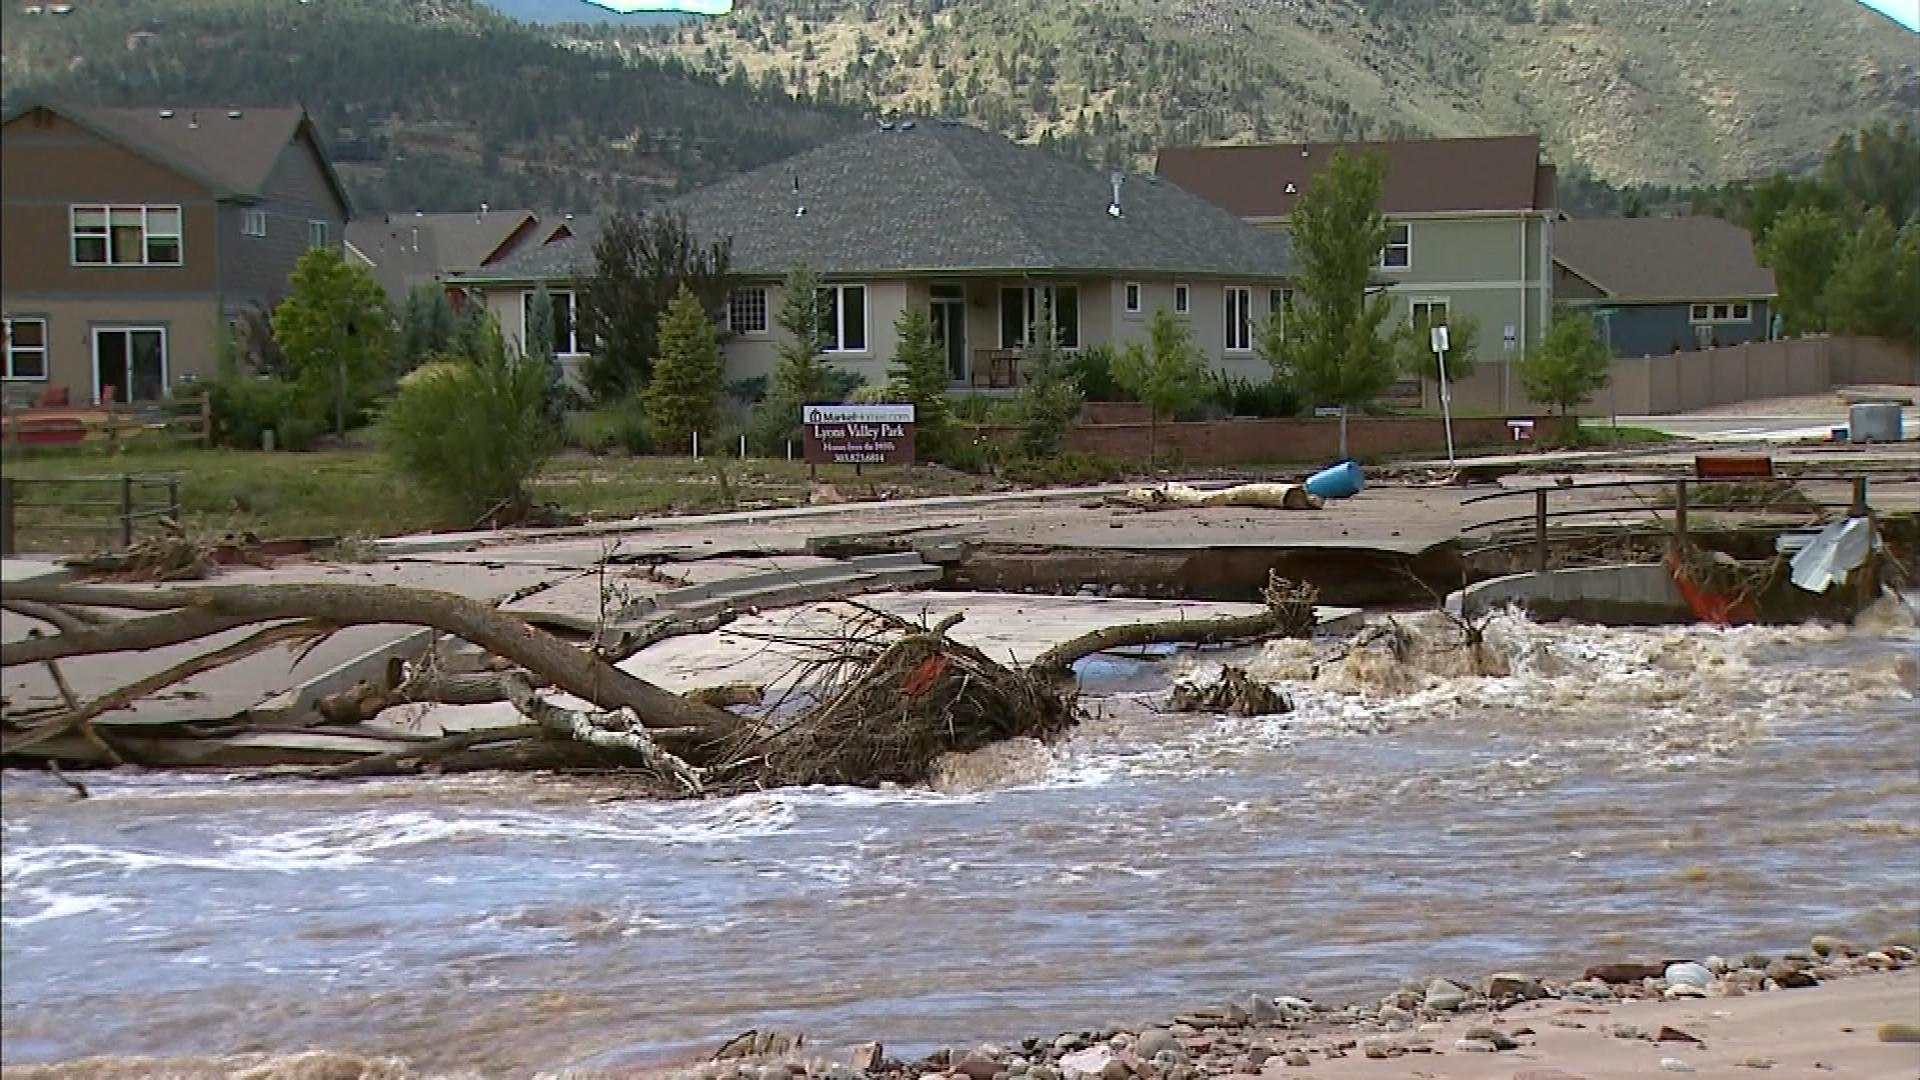 Damage from flooding in Lyons on Sept. 19, 2013. (credit: CBS)